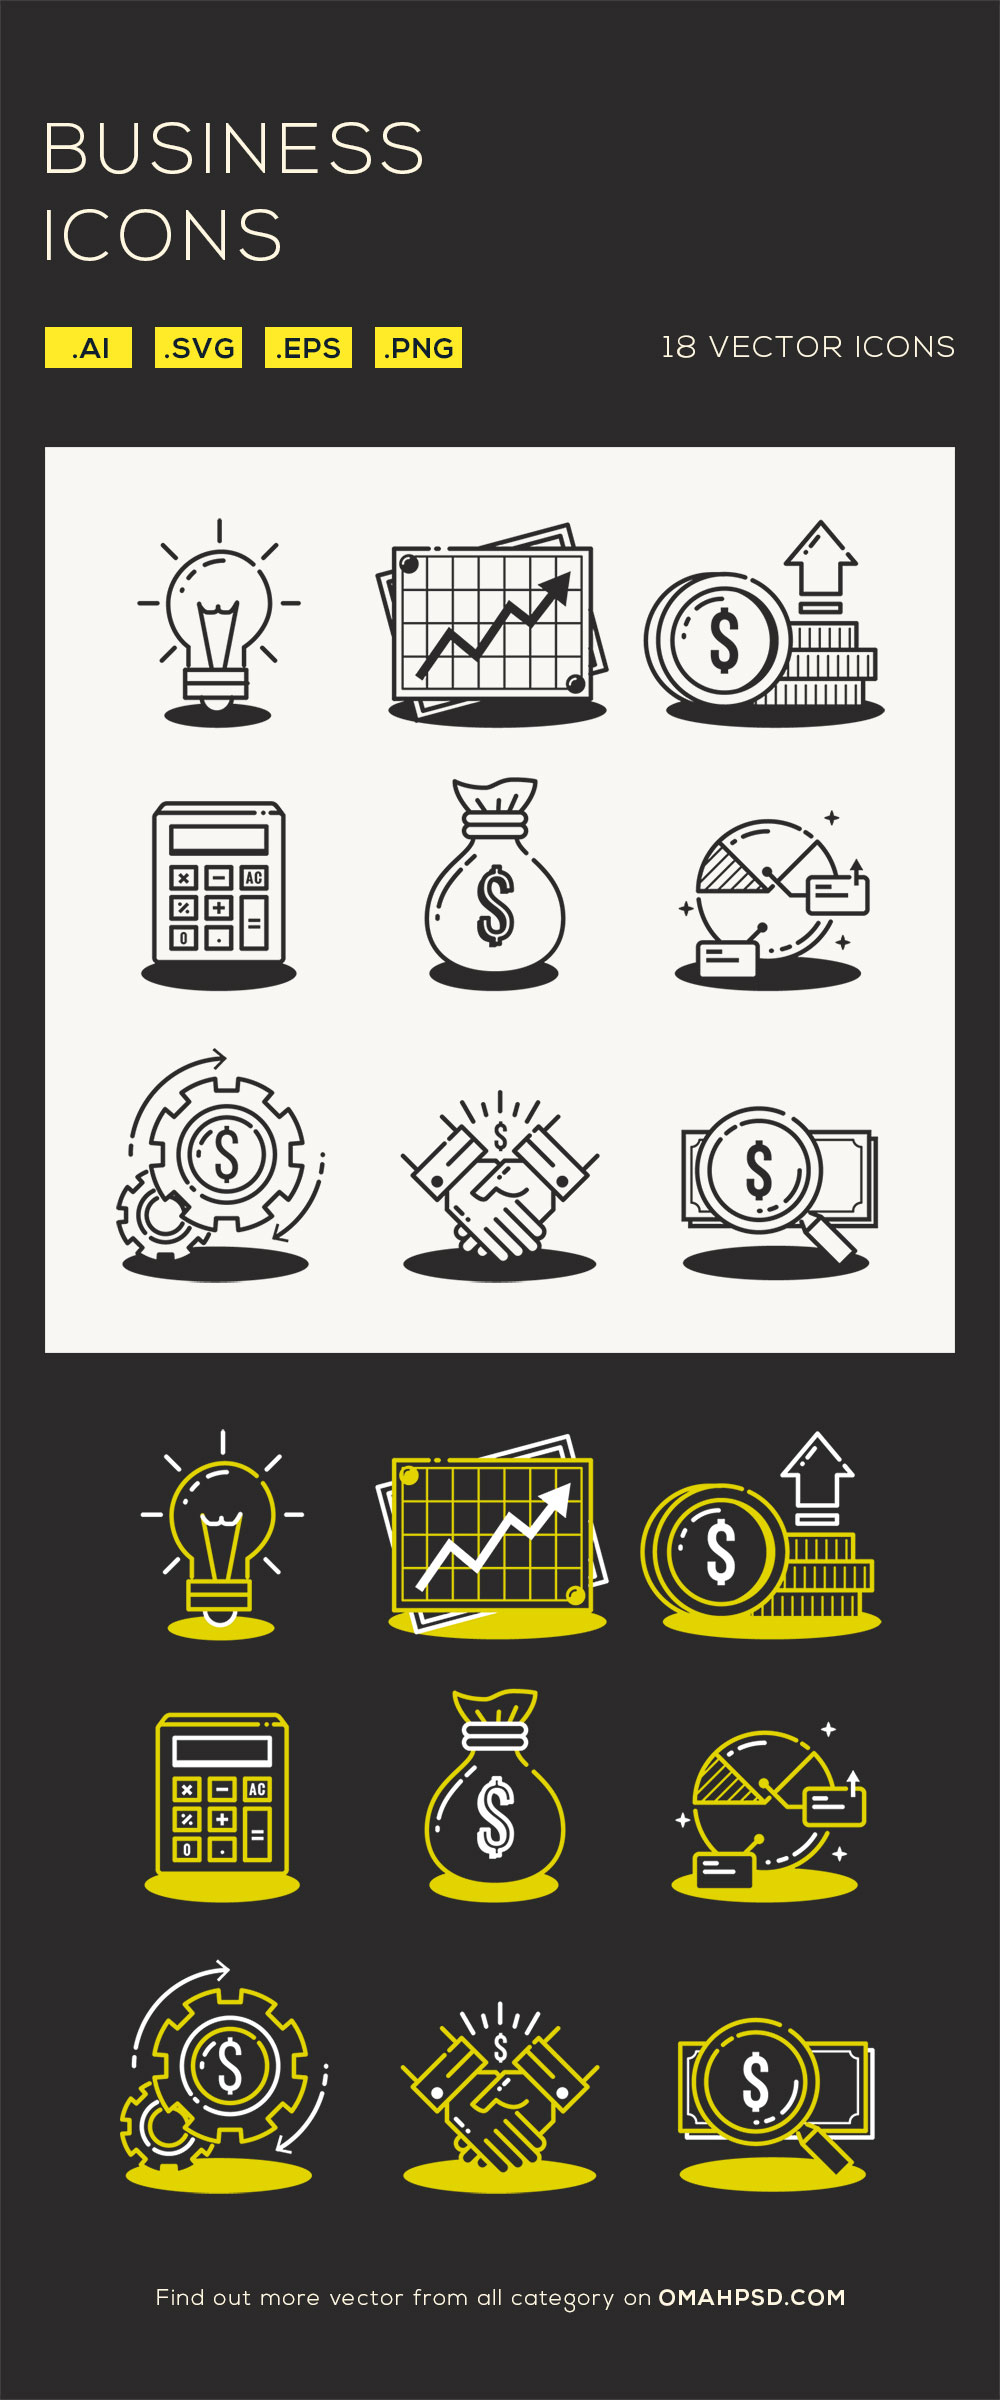 Free Business Vector Icons Preview